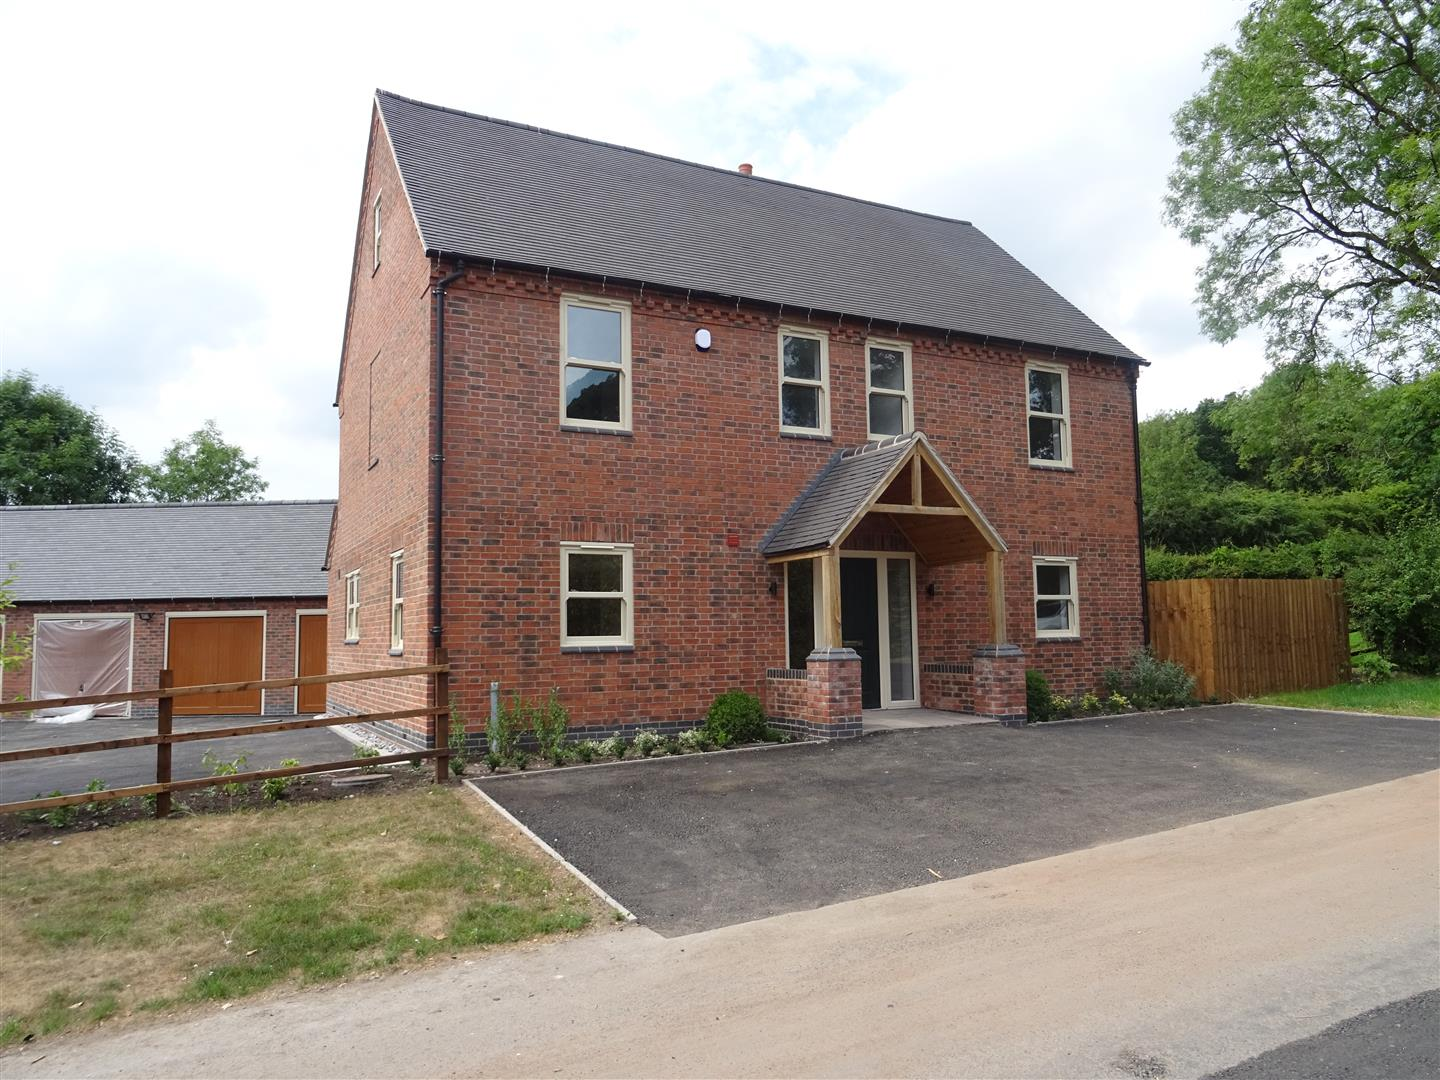 Melbourne Road Newbold Coleorton Leicestershire Le67 6 Bedroom Detached Full Brick Brand New Home On Wiring House To Garage For Sale 48427479 Primelocation